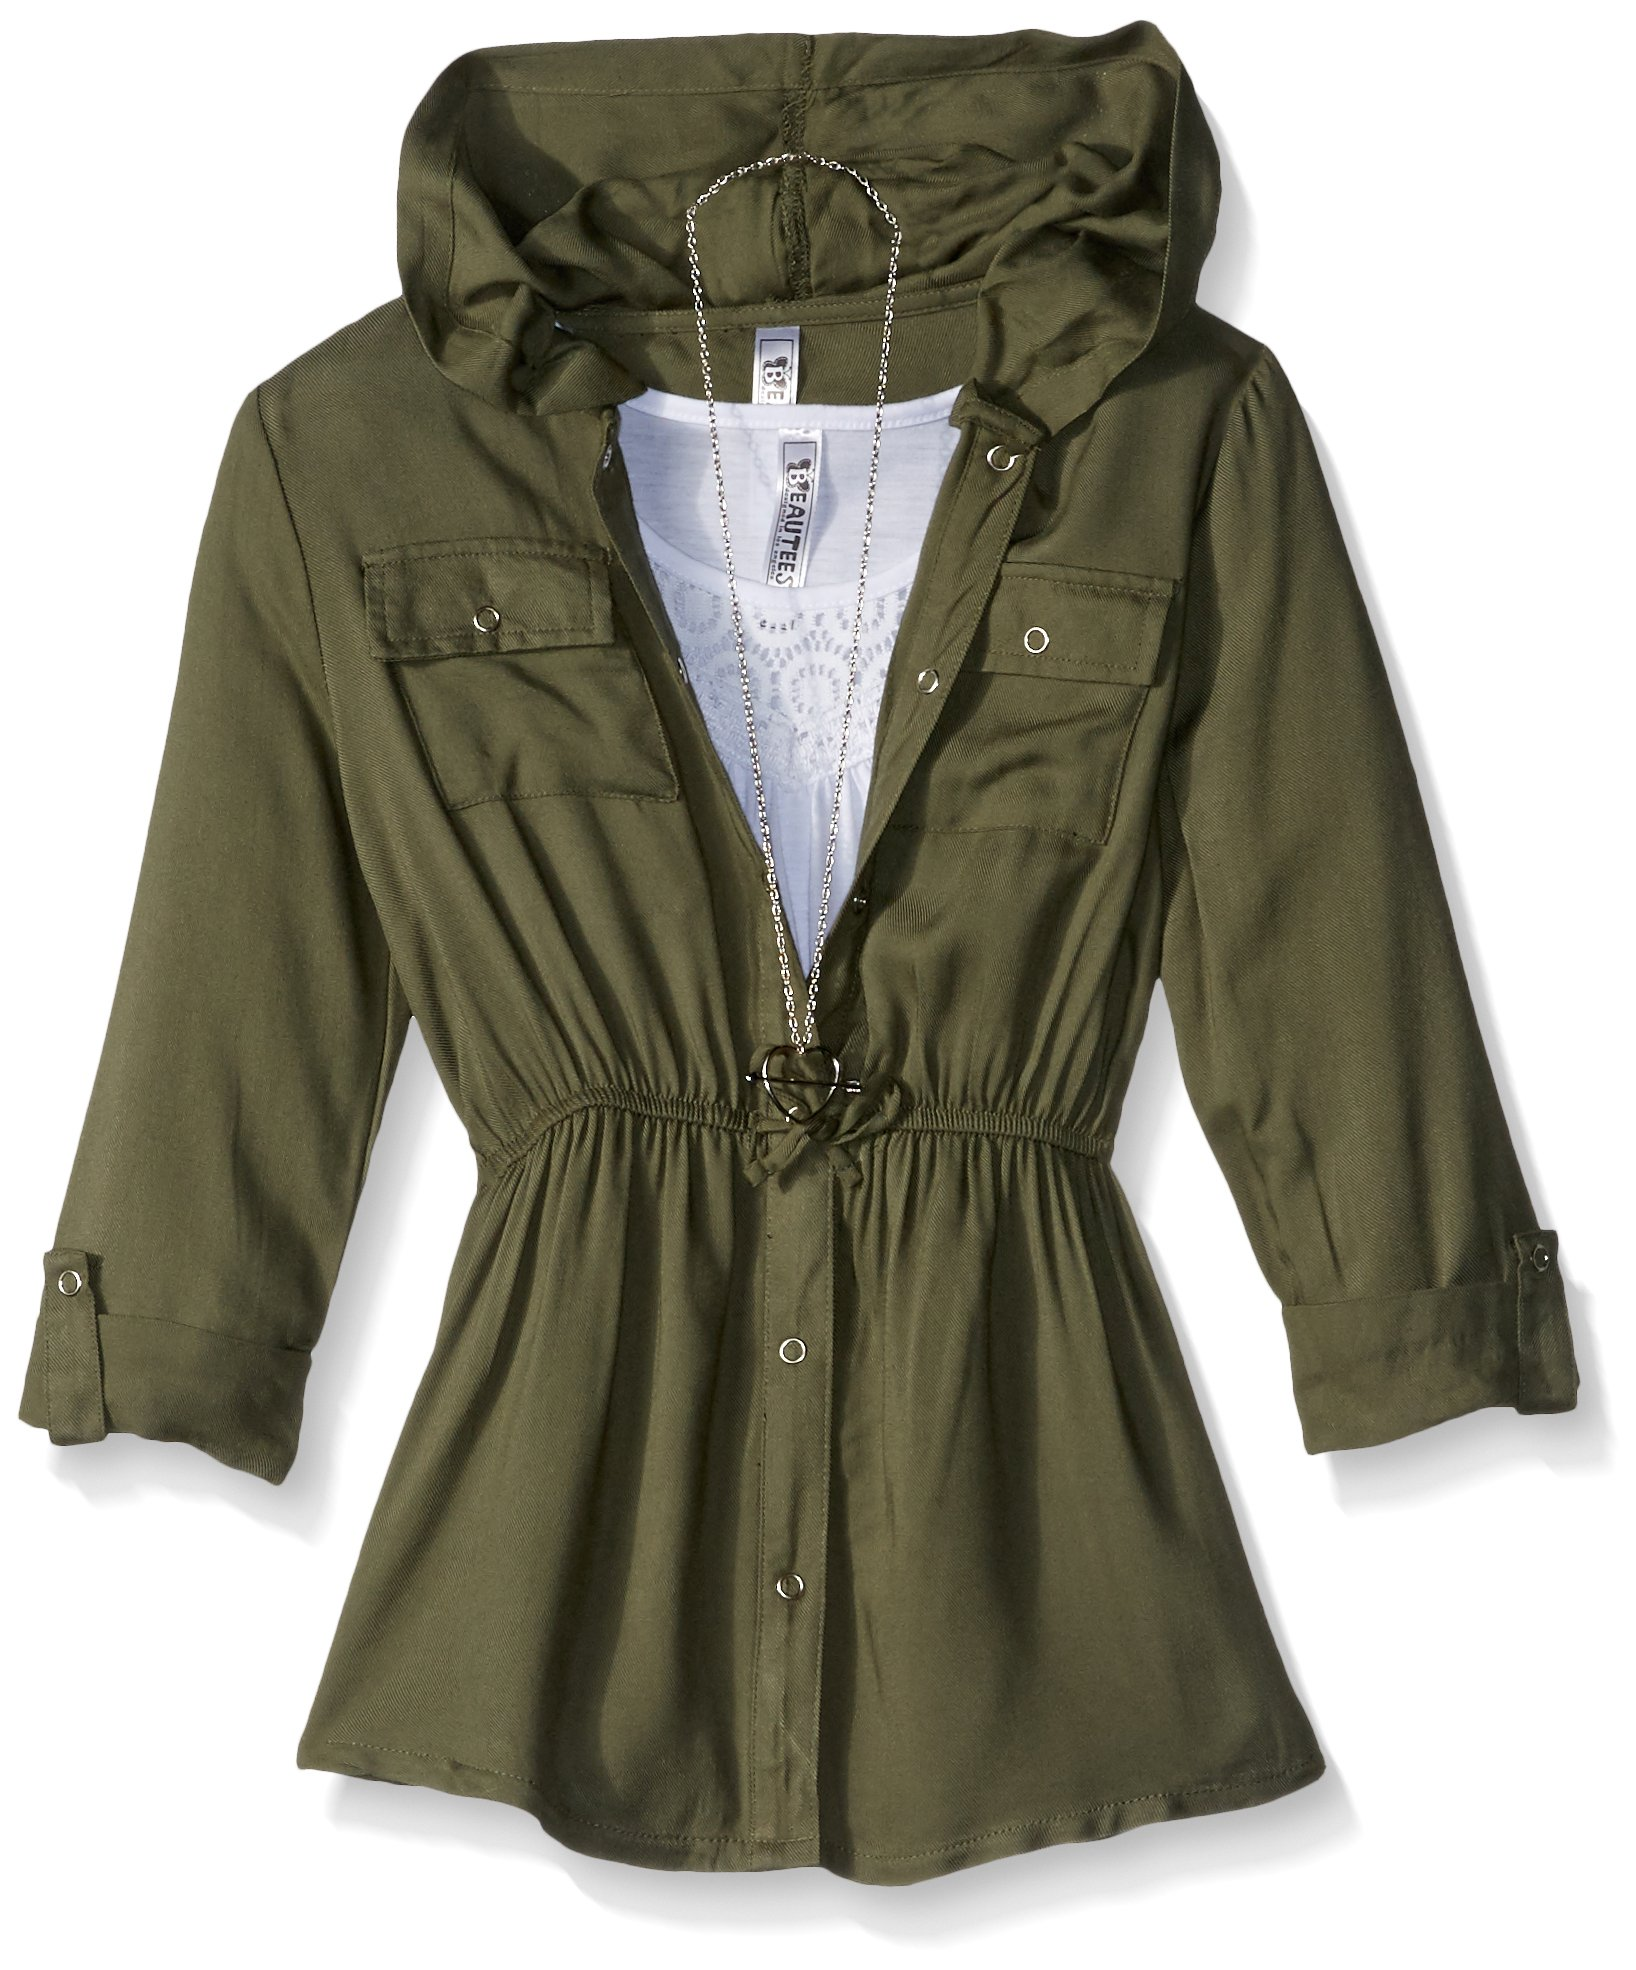 Beautees Big Girls' 2pc. 3/4 Sleeve Jacket Over Solid Tank, Olive, M by Beautees